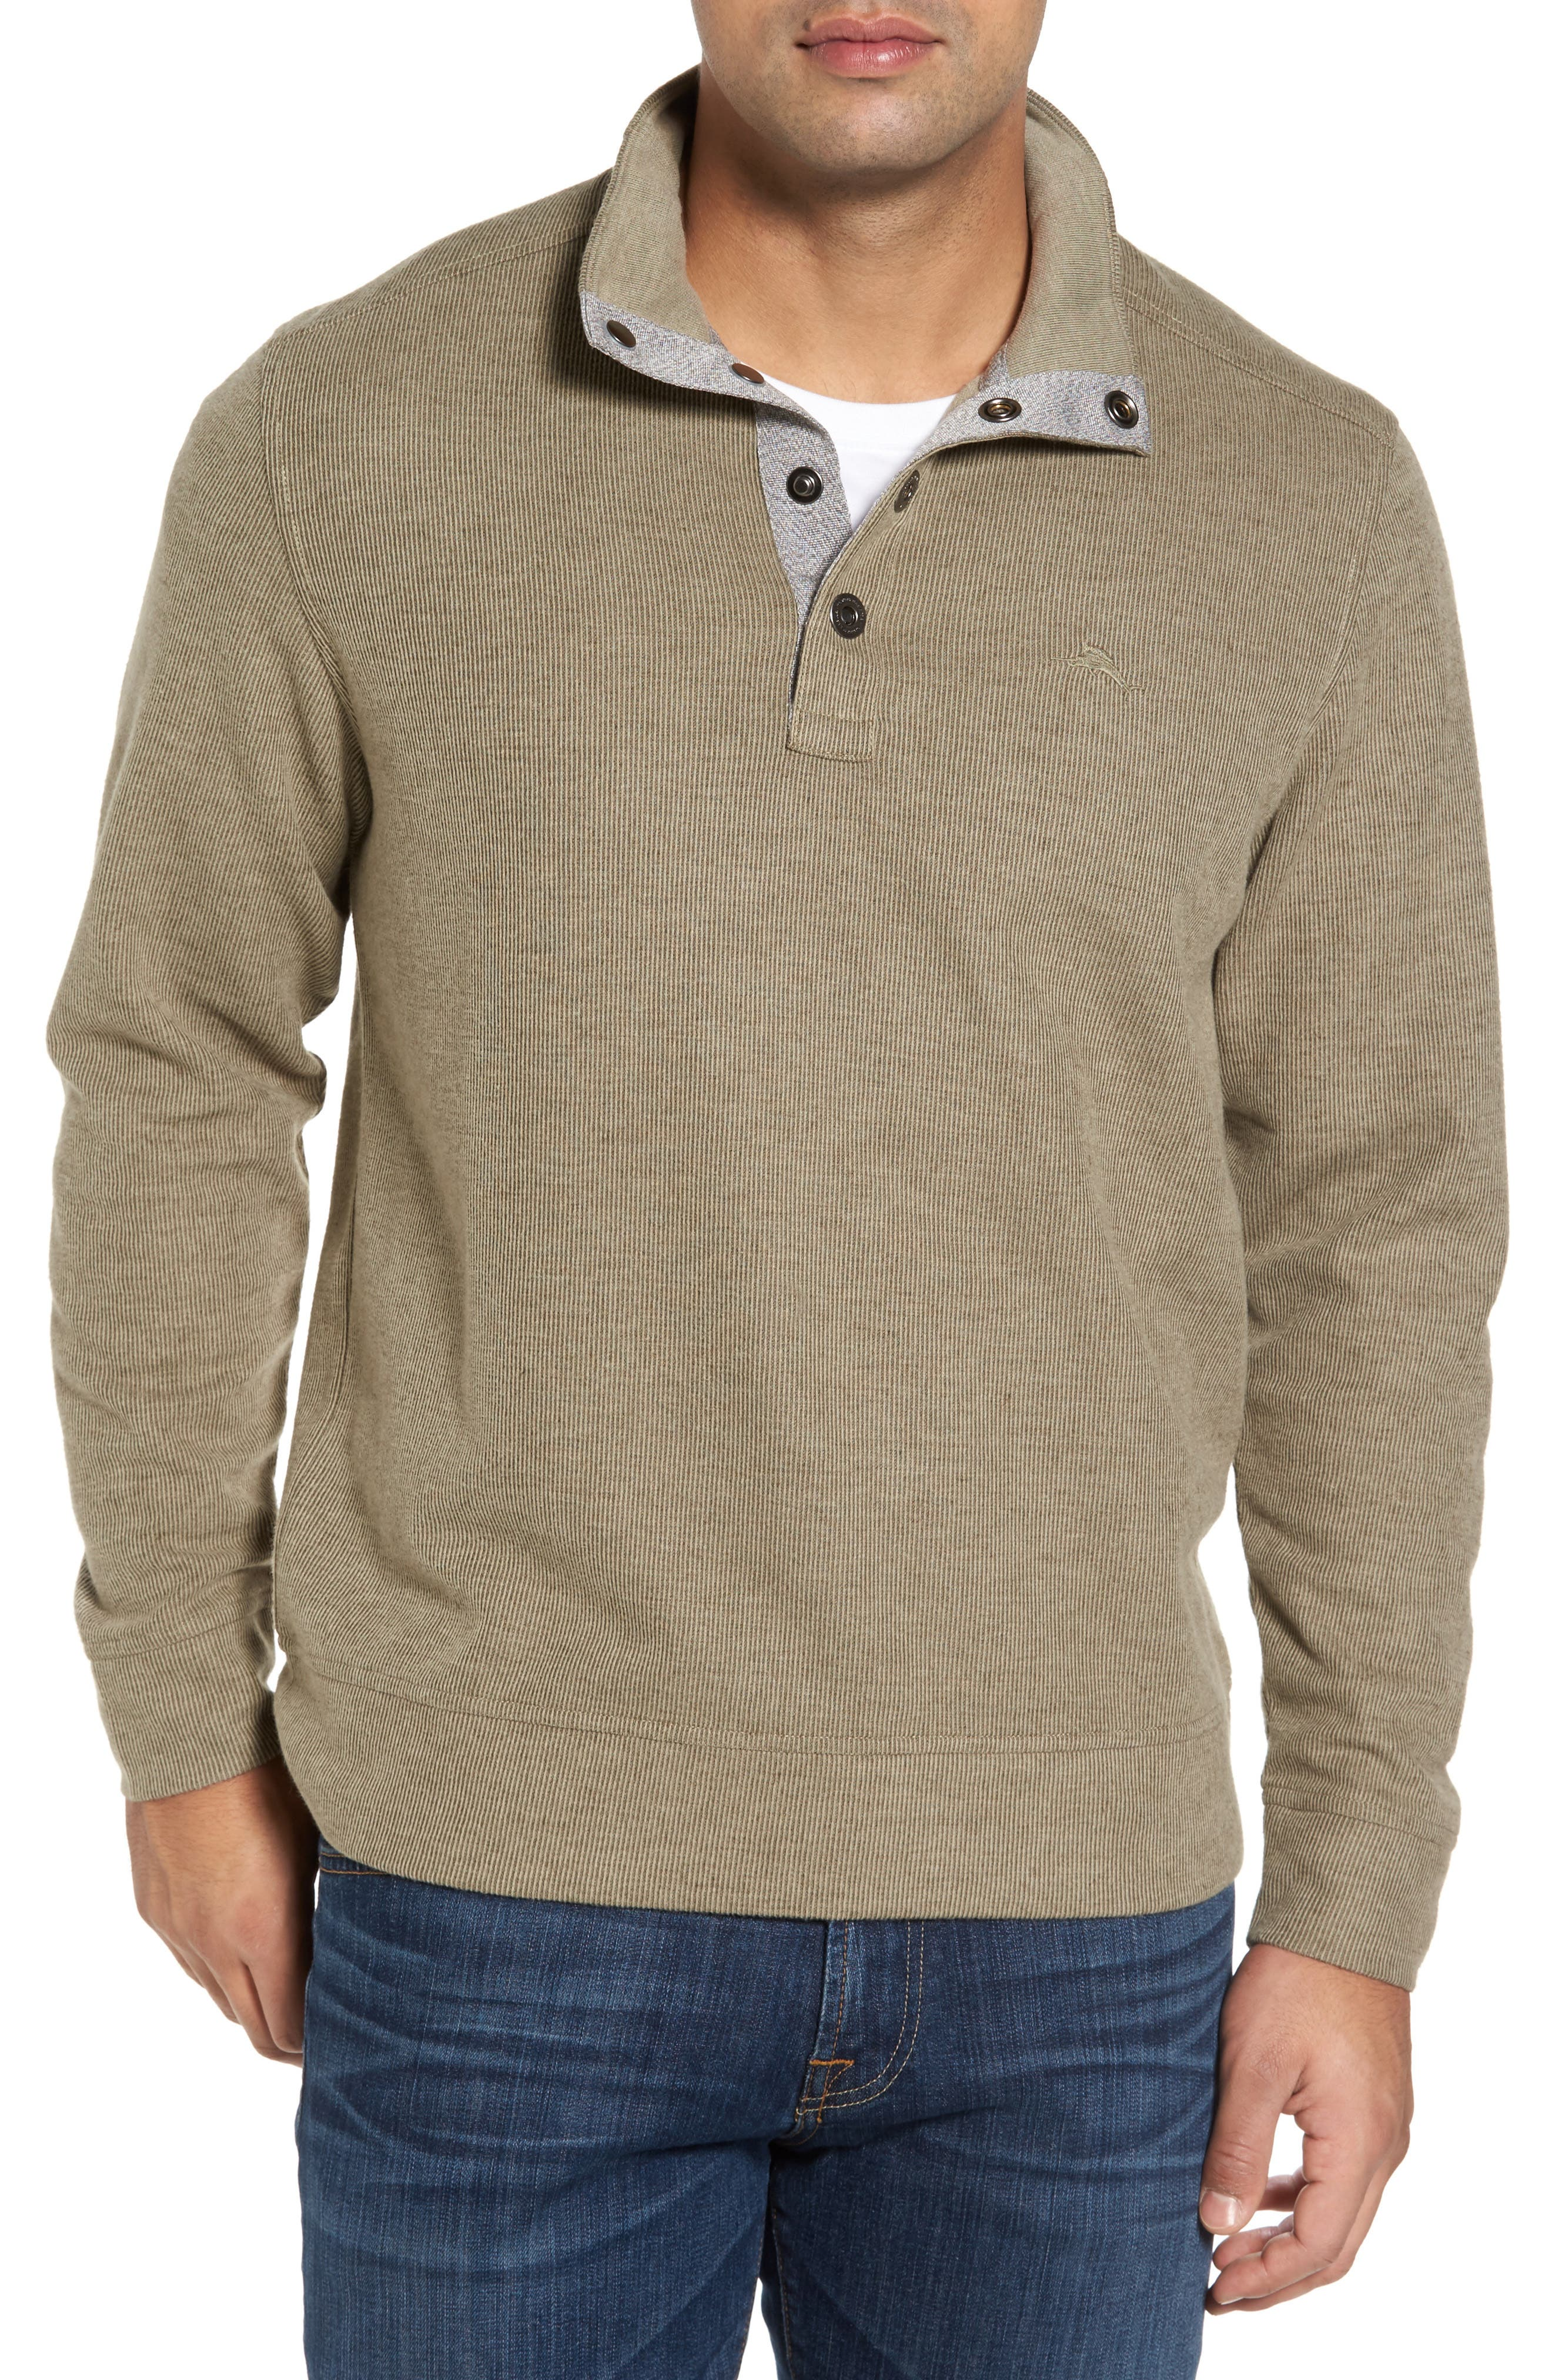 Cold Springs Snap Mock Neck Sweater,                             Main thumbnail 1, color,                             Mocha